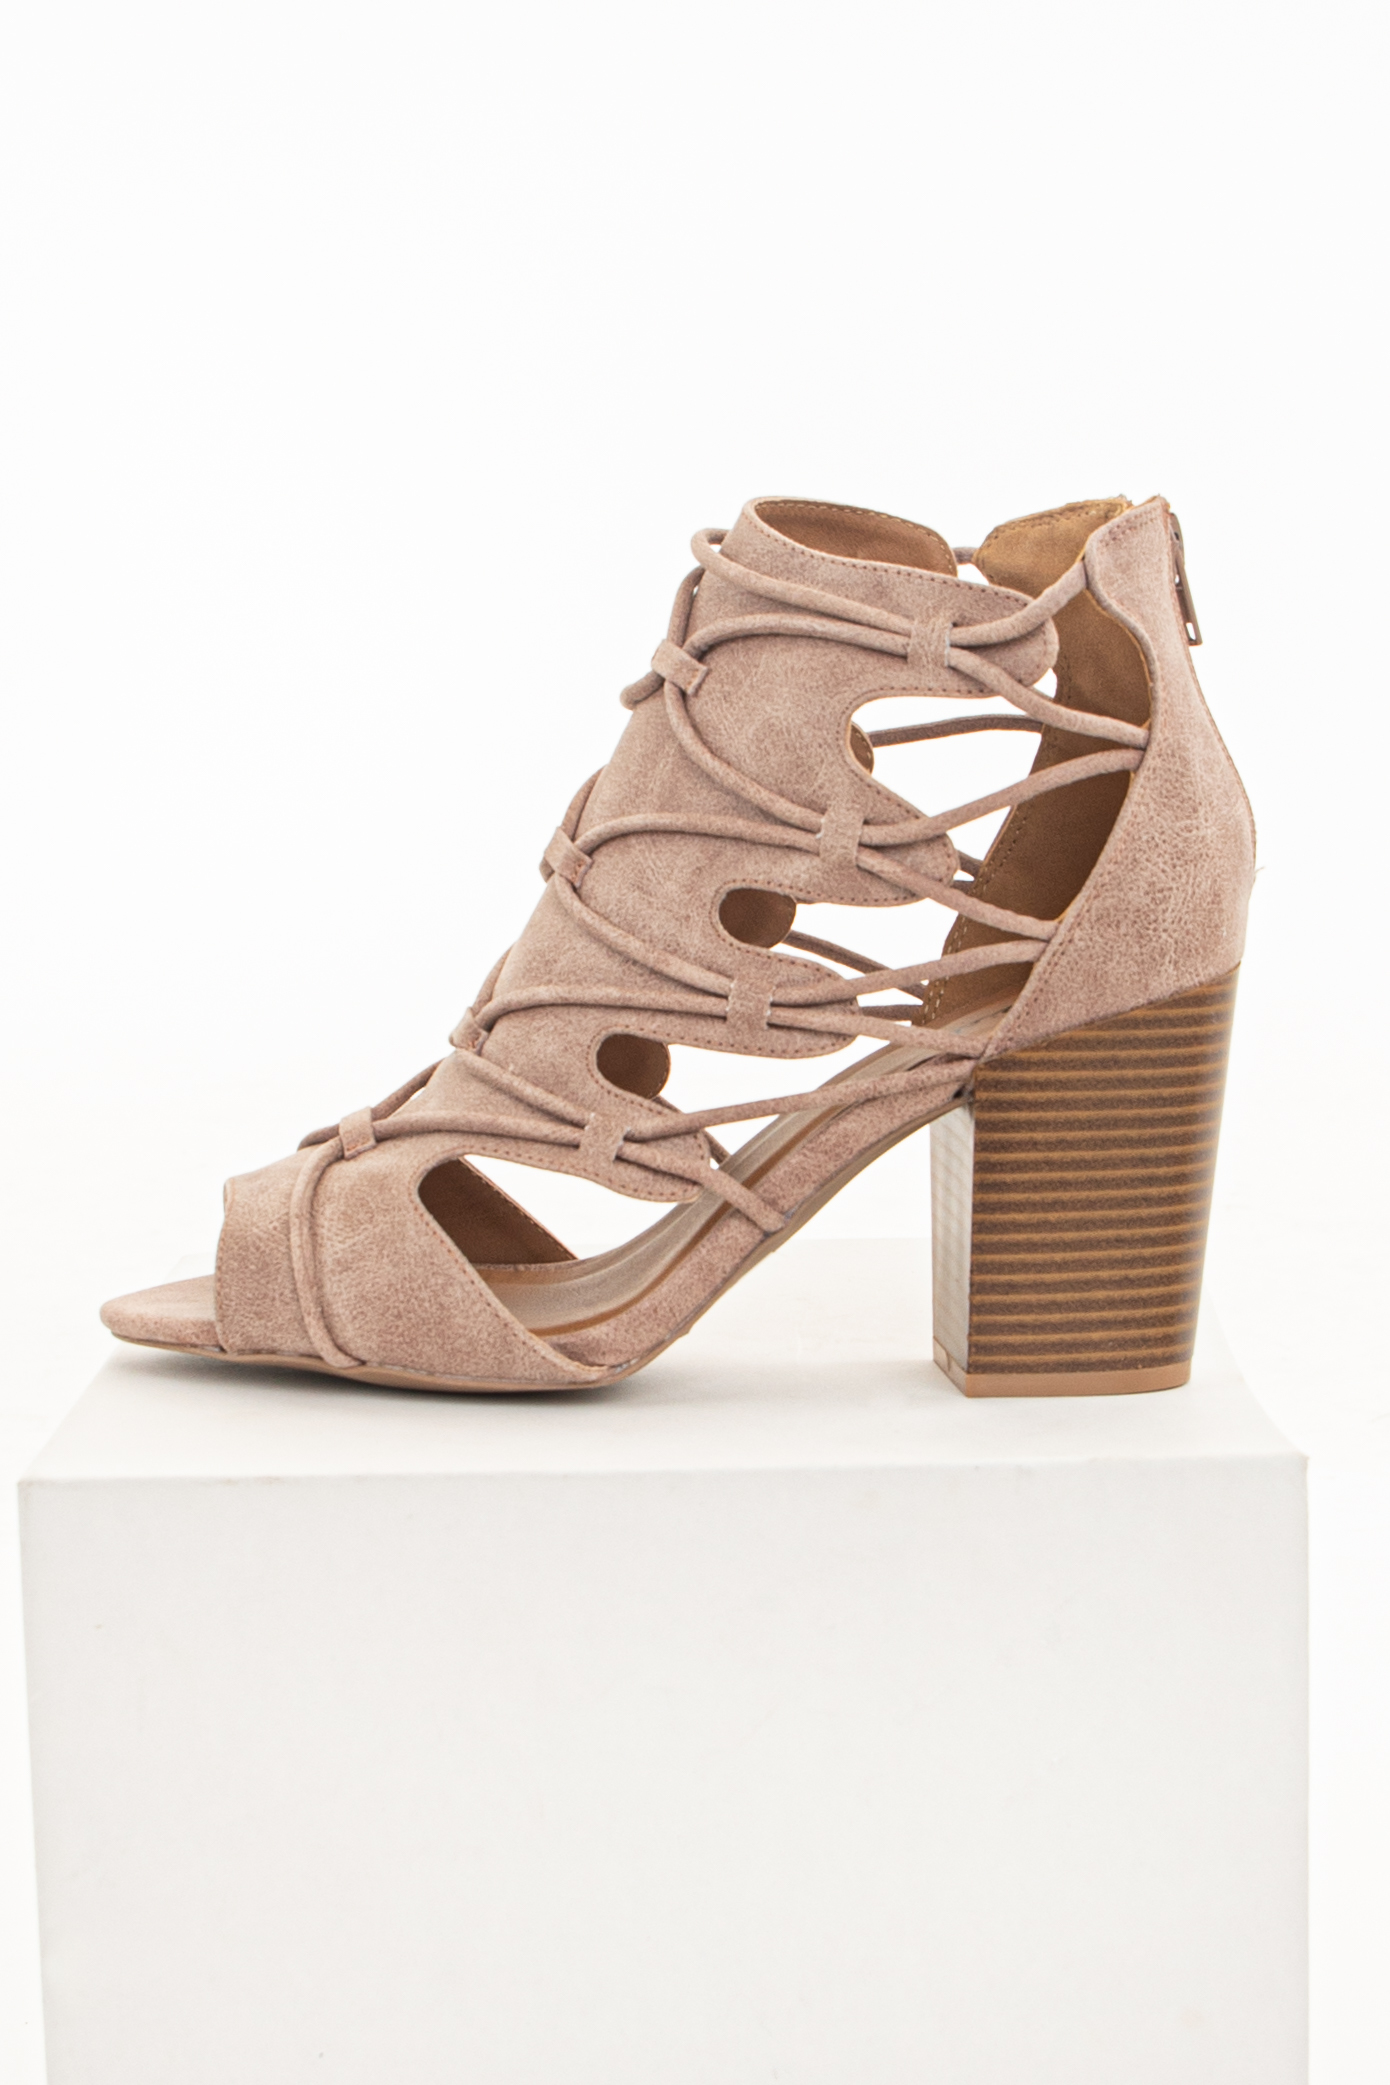 Warm Taupe Lace Up Open Toe High Heels